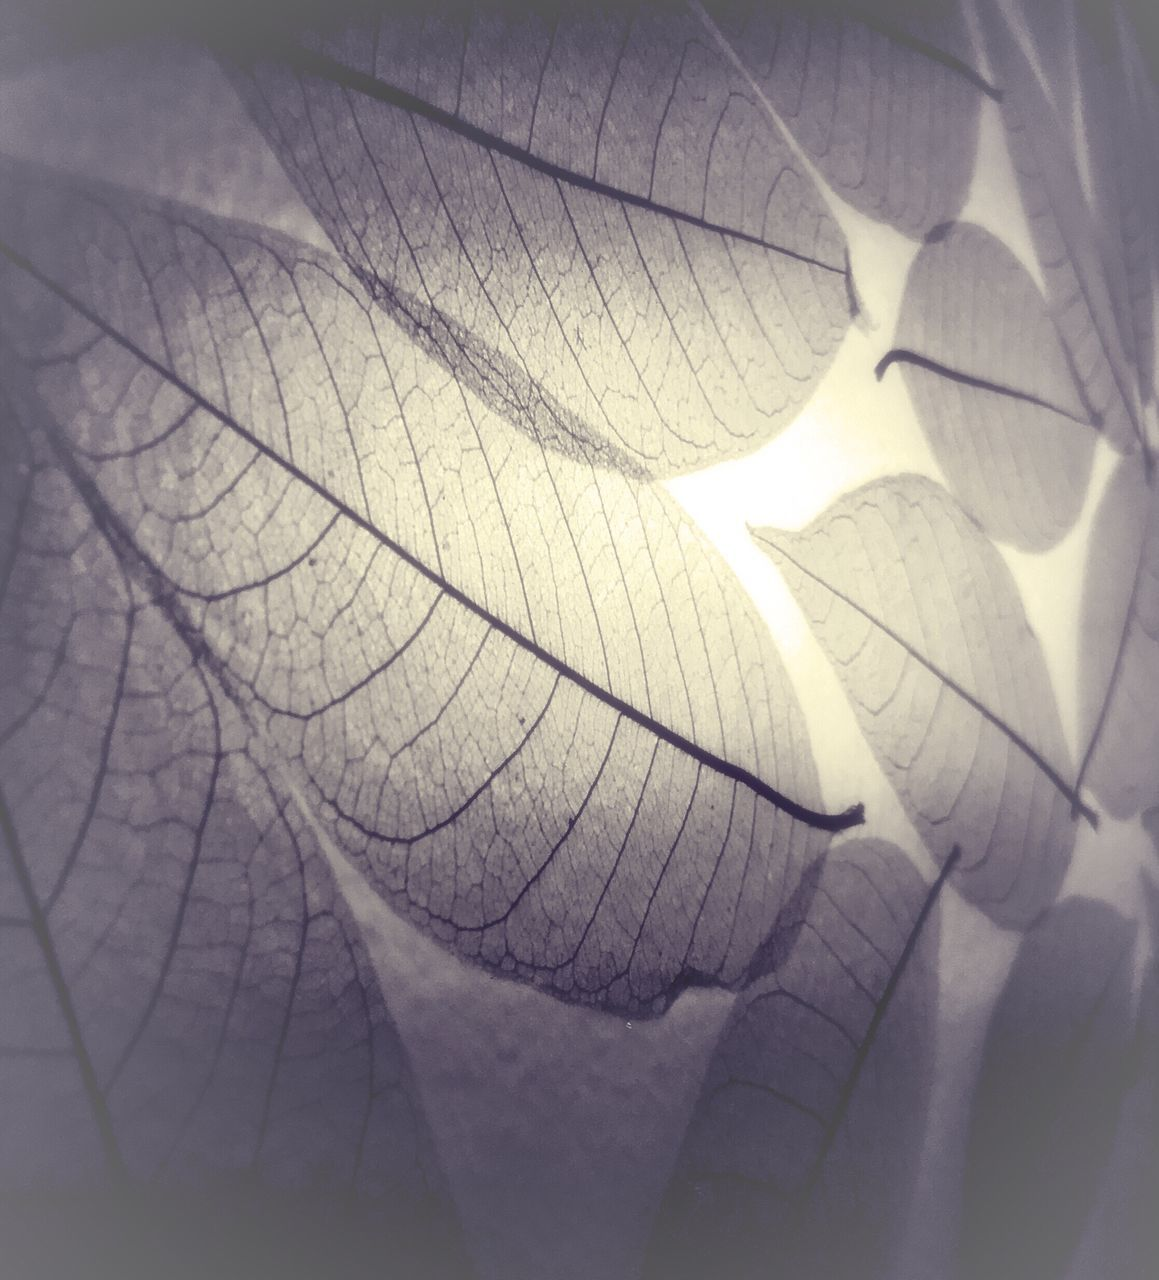 leaf, close-up, nature, day, sunlight, no people, outdoors, fragility, beauty in nature